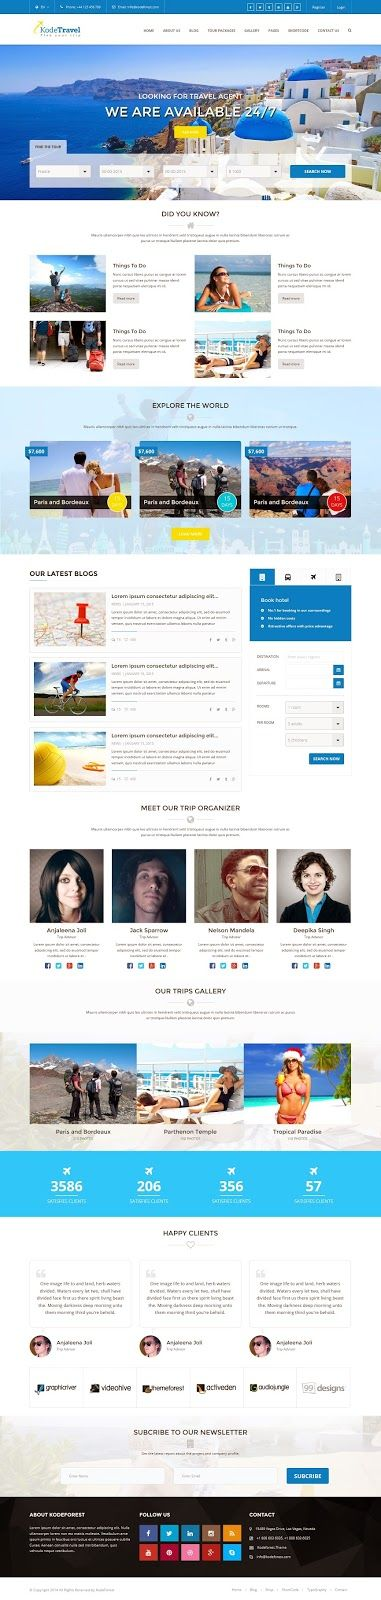 Fresh Travel and Tourism HTML5 Bootstrap Template 2015